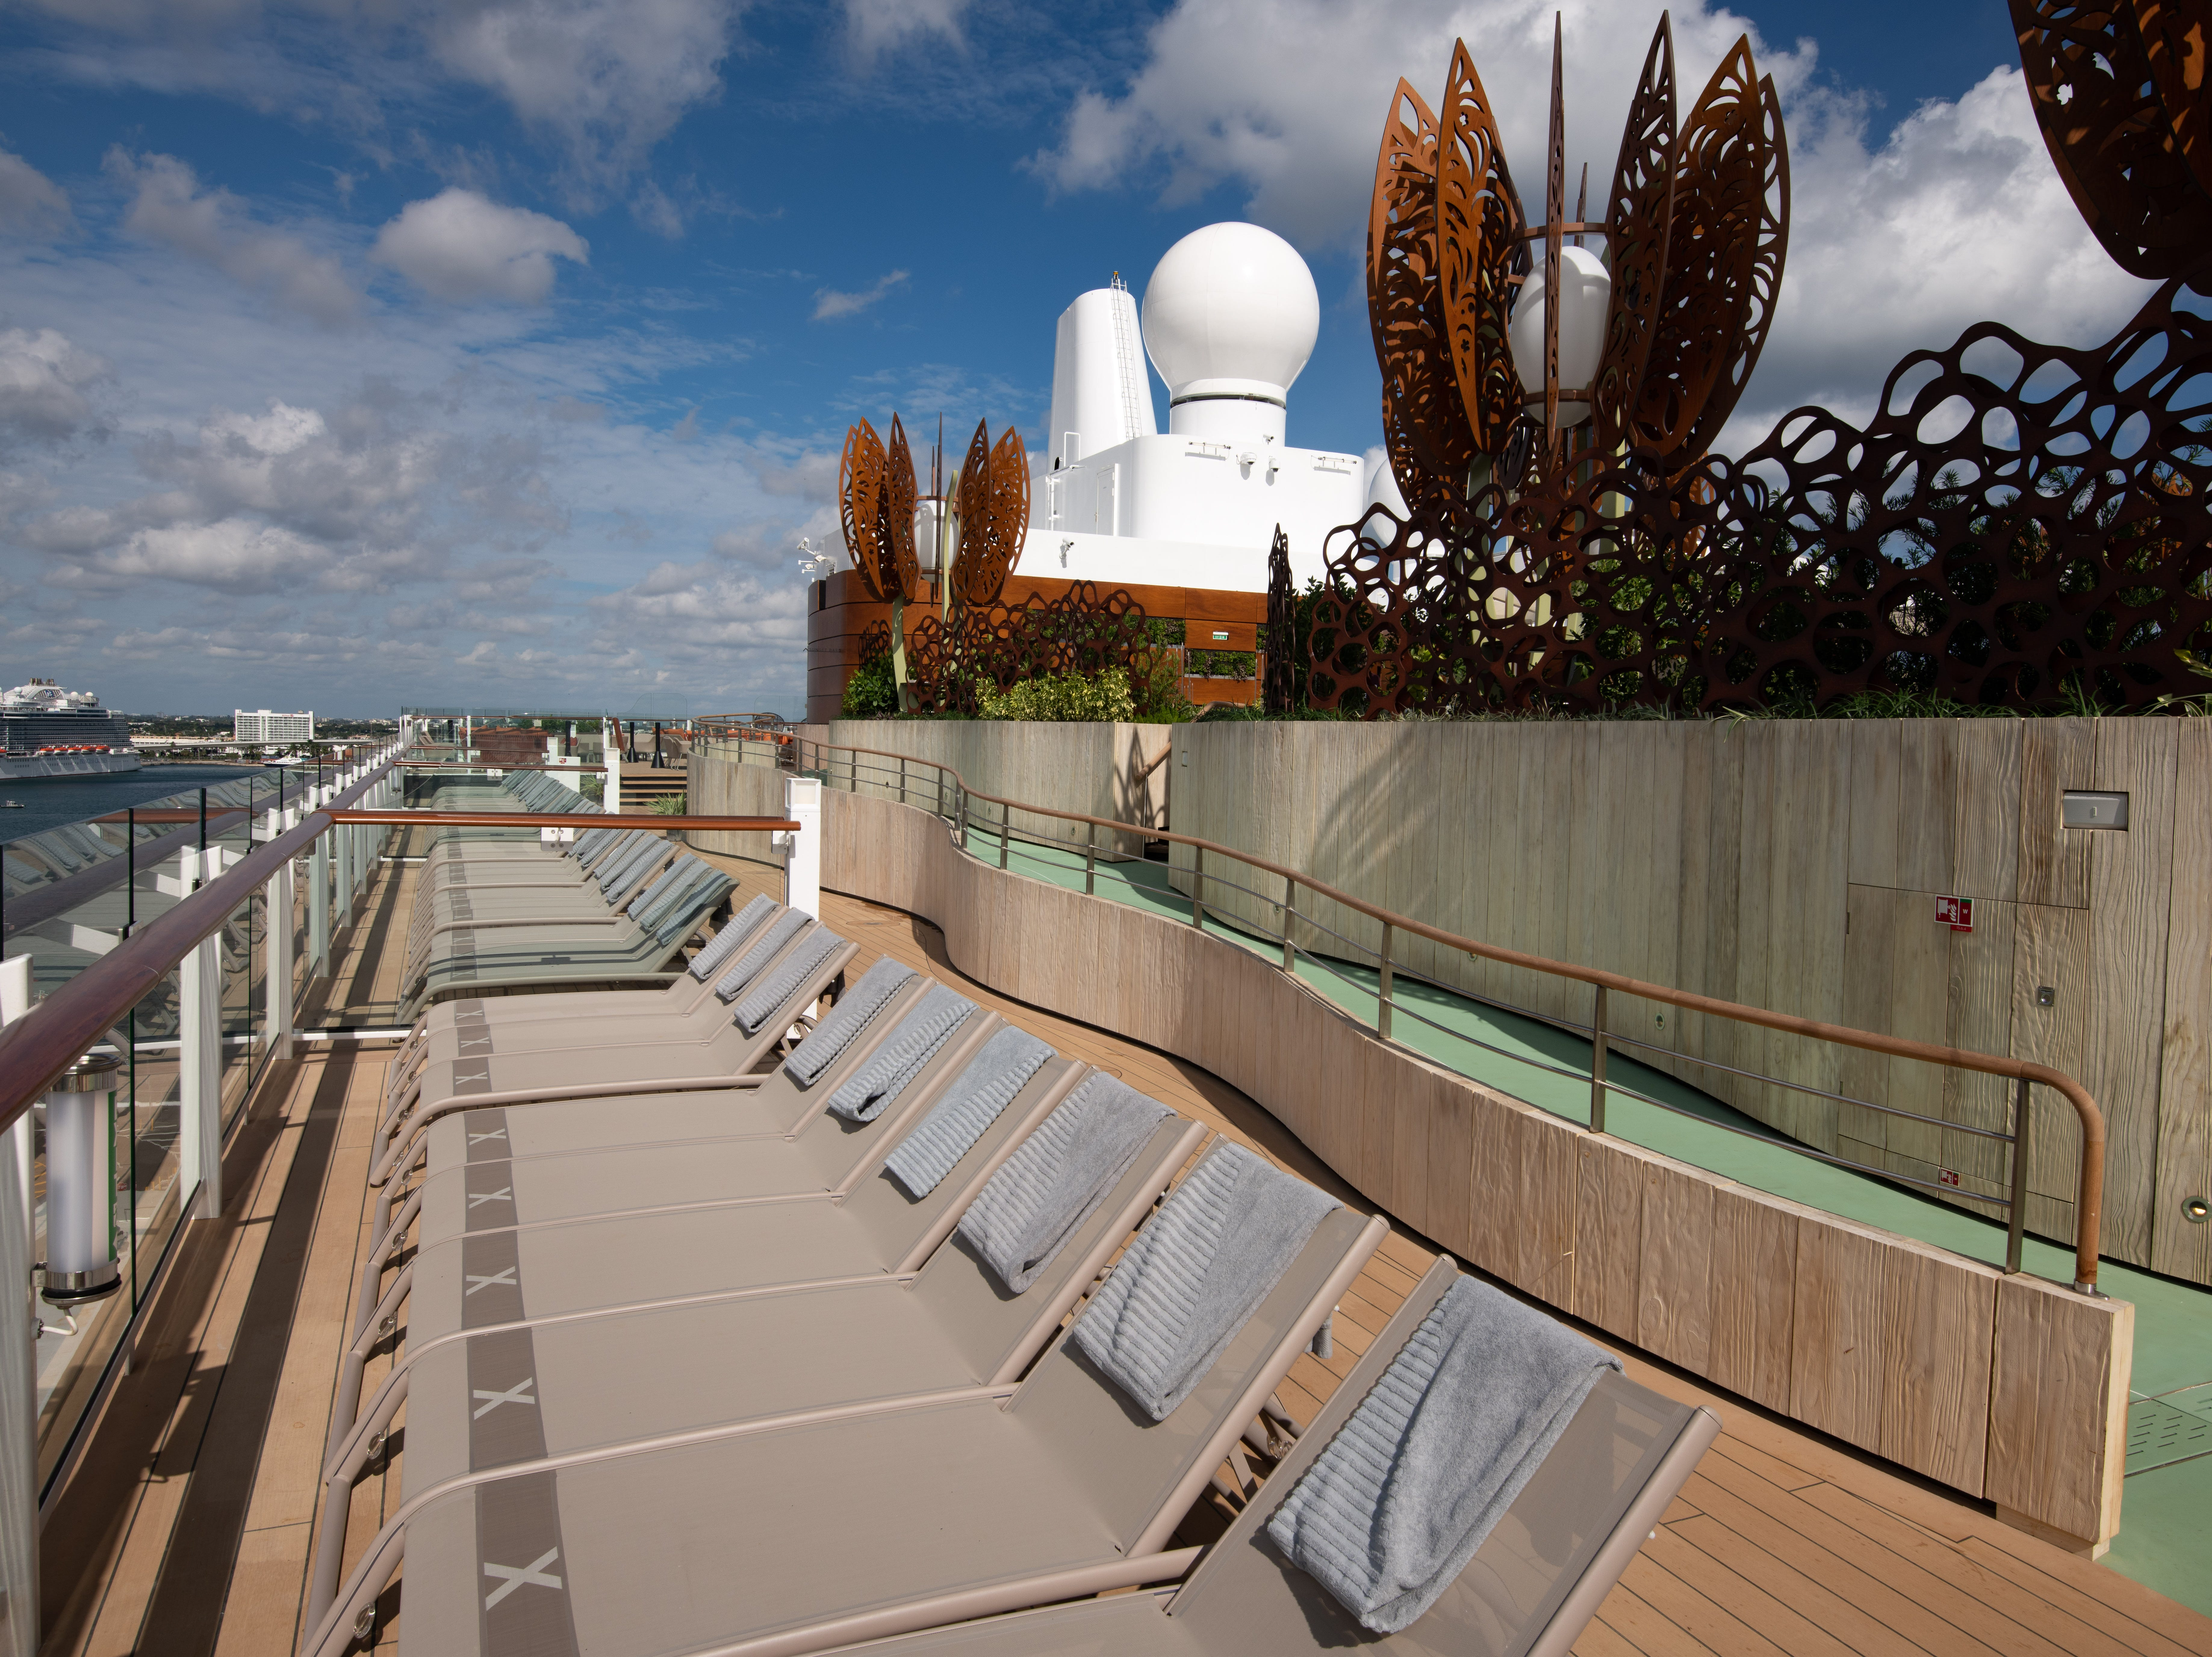 More lounge chairs line the side of Celebrity Edge just outside the Rooftop Garden.